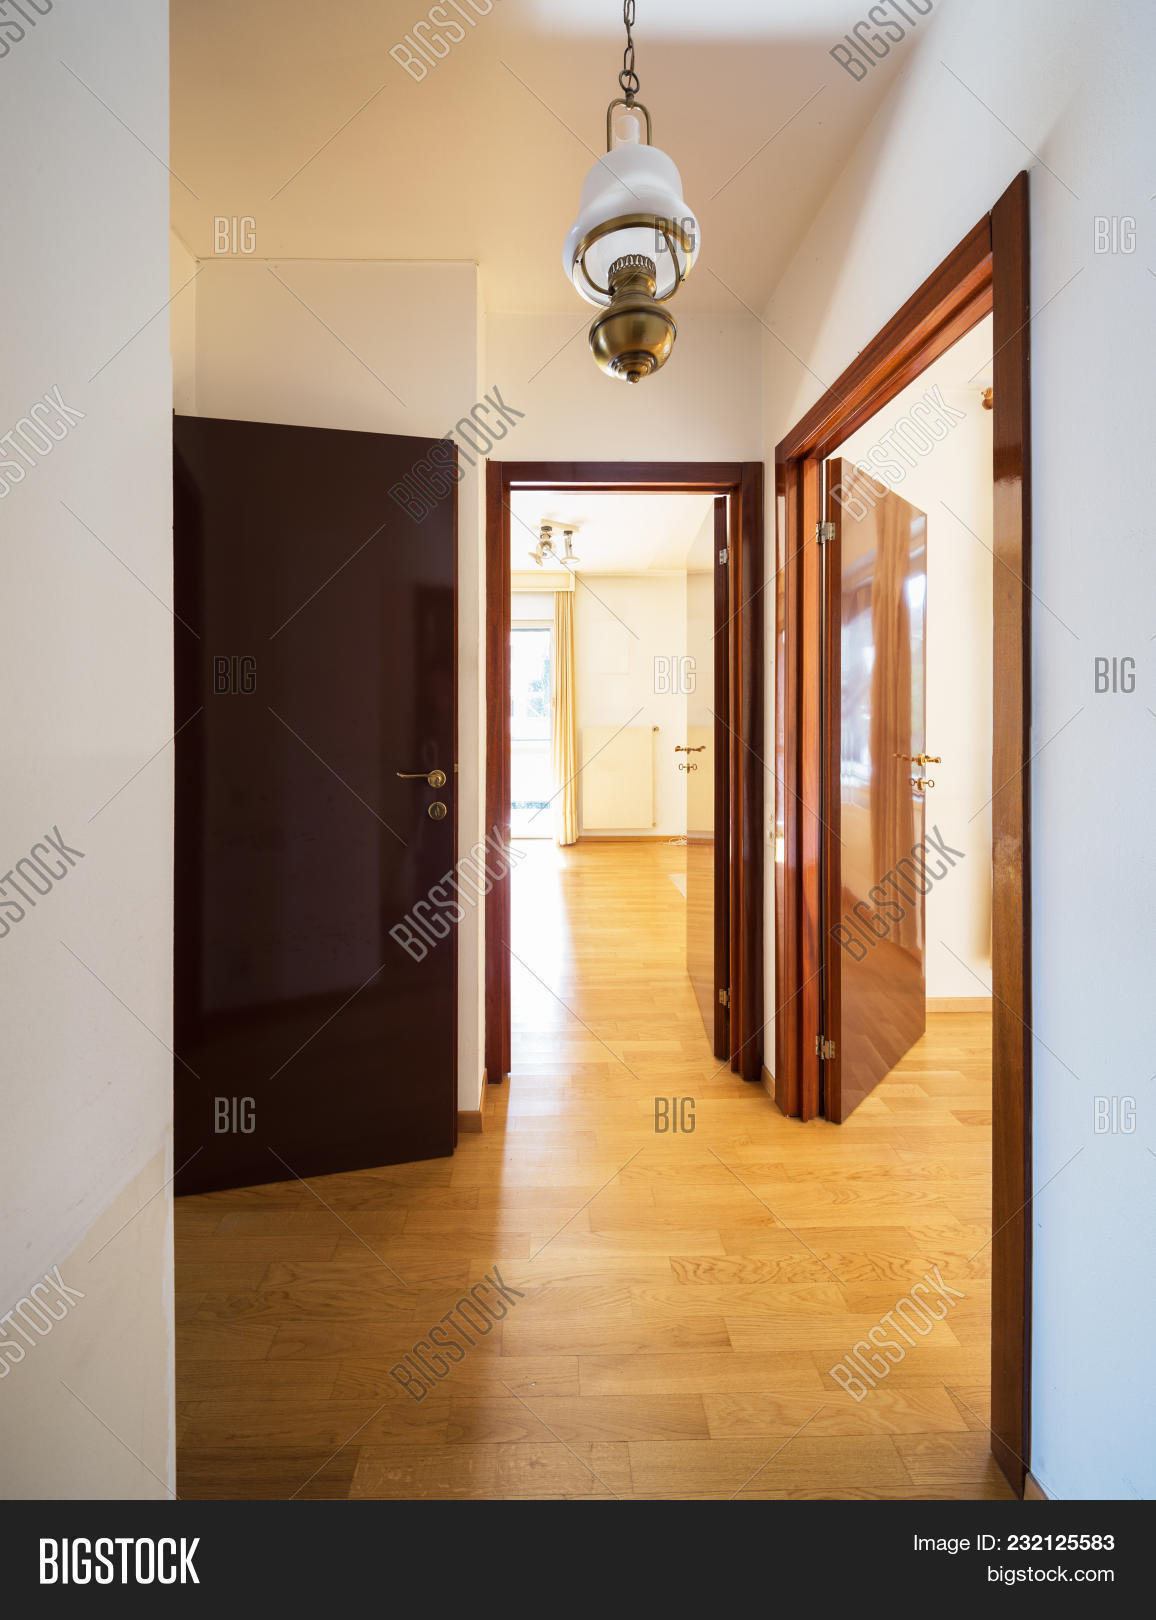 Anteroom With Three Doors, Two Rooms And A Window. Nobody Inside